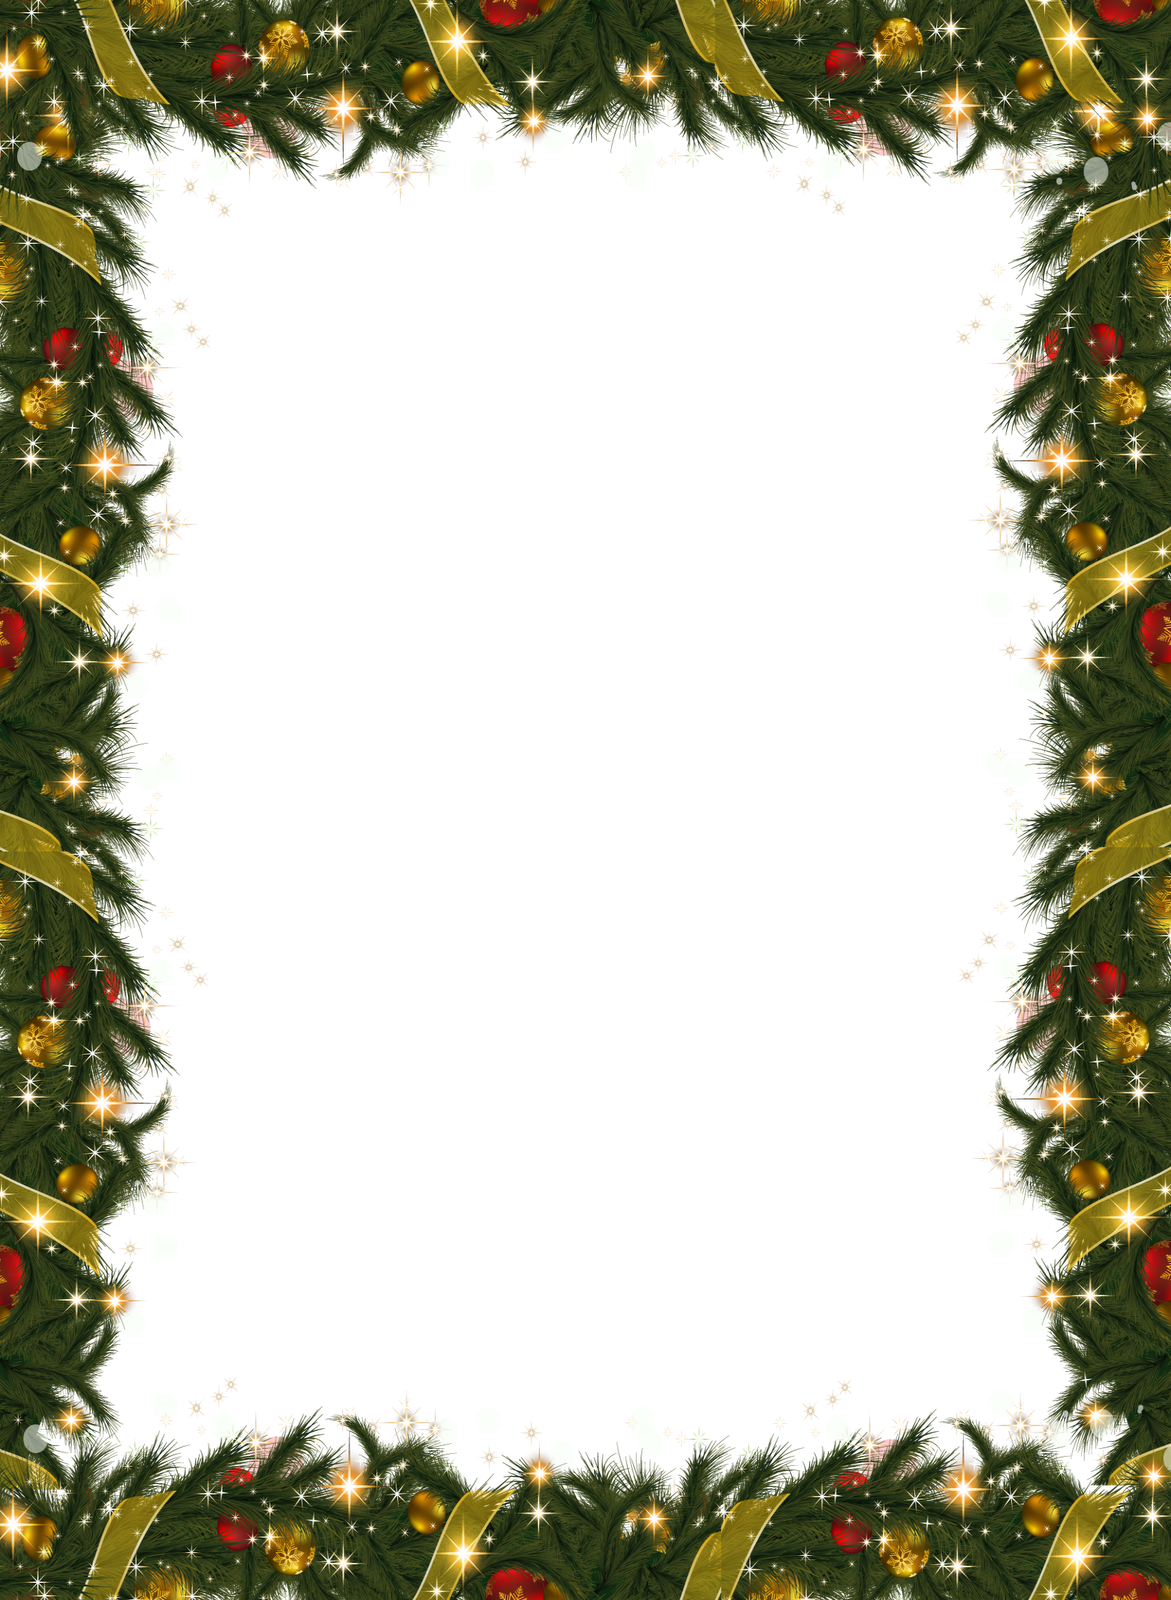 Christmas holiday clipart banner Lots & Lots of free clipart!! Lots of Frames!! Christmas Holiday ... banner